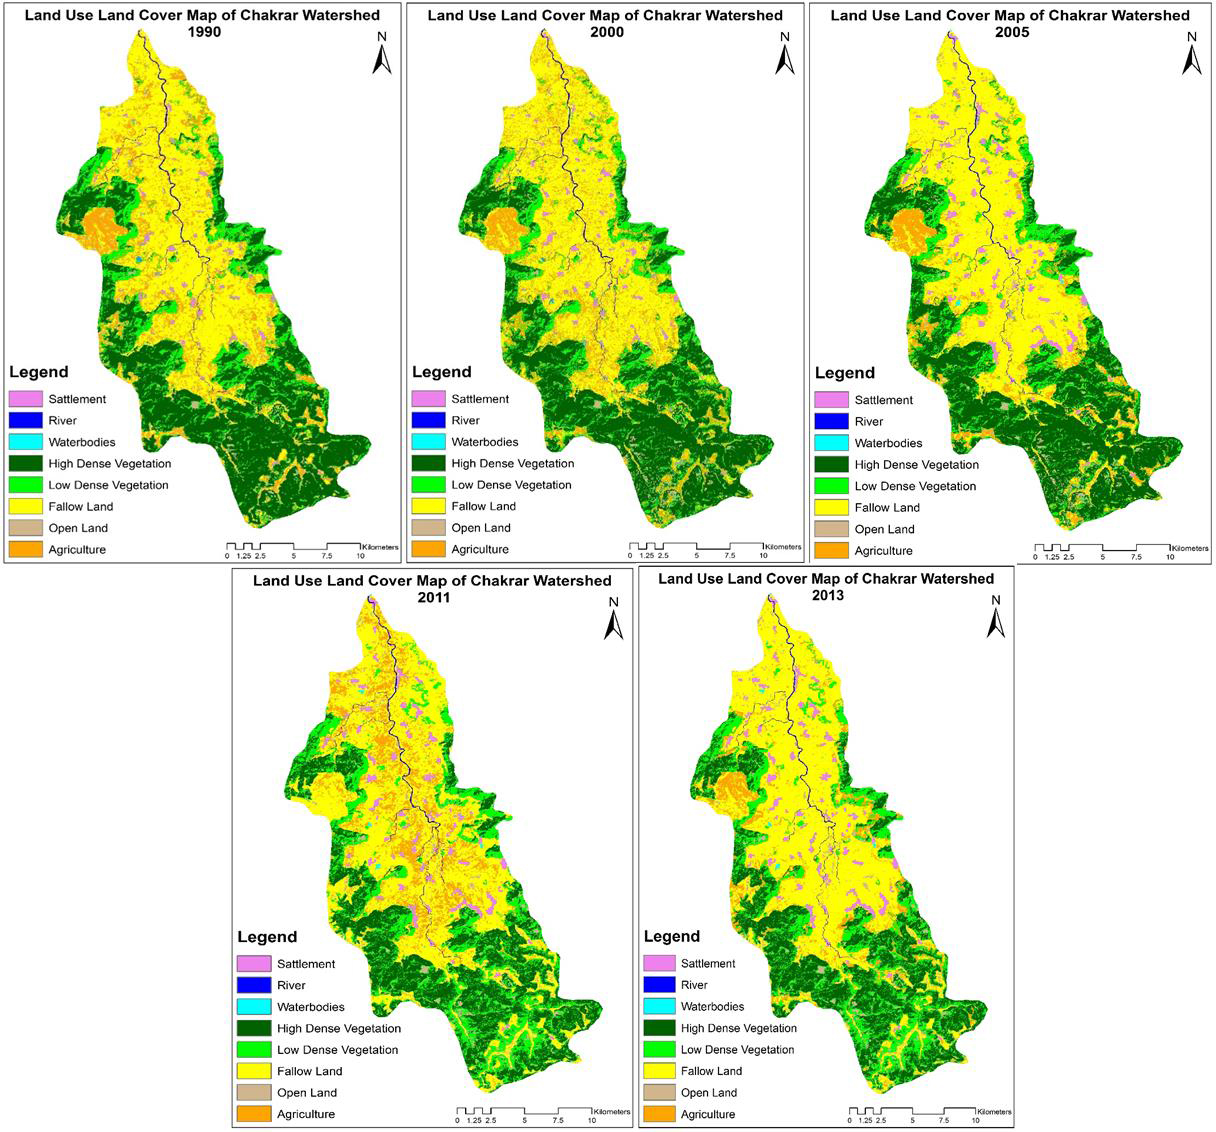 Assessment of Land use Land cover Change in Chakrar Watershed using Geospatial Technique.